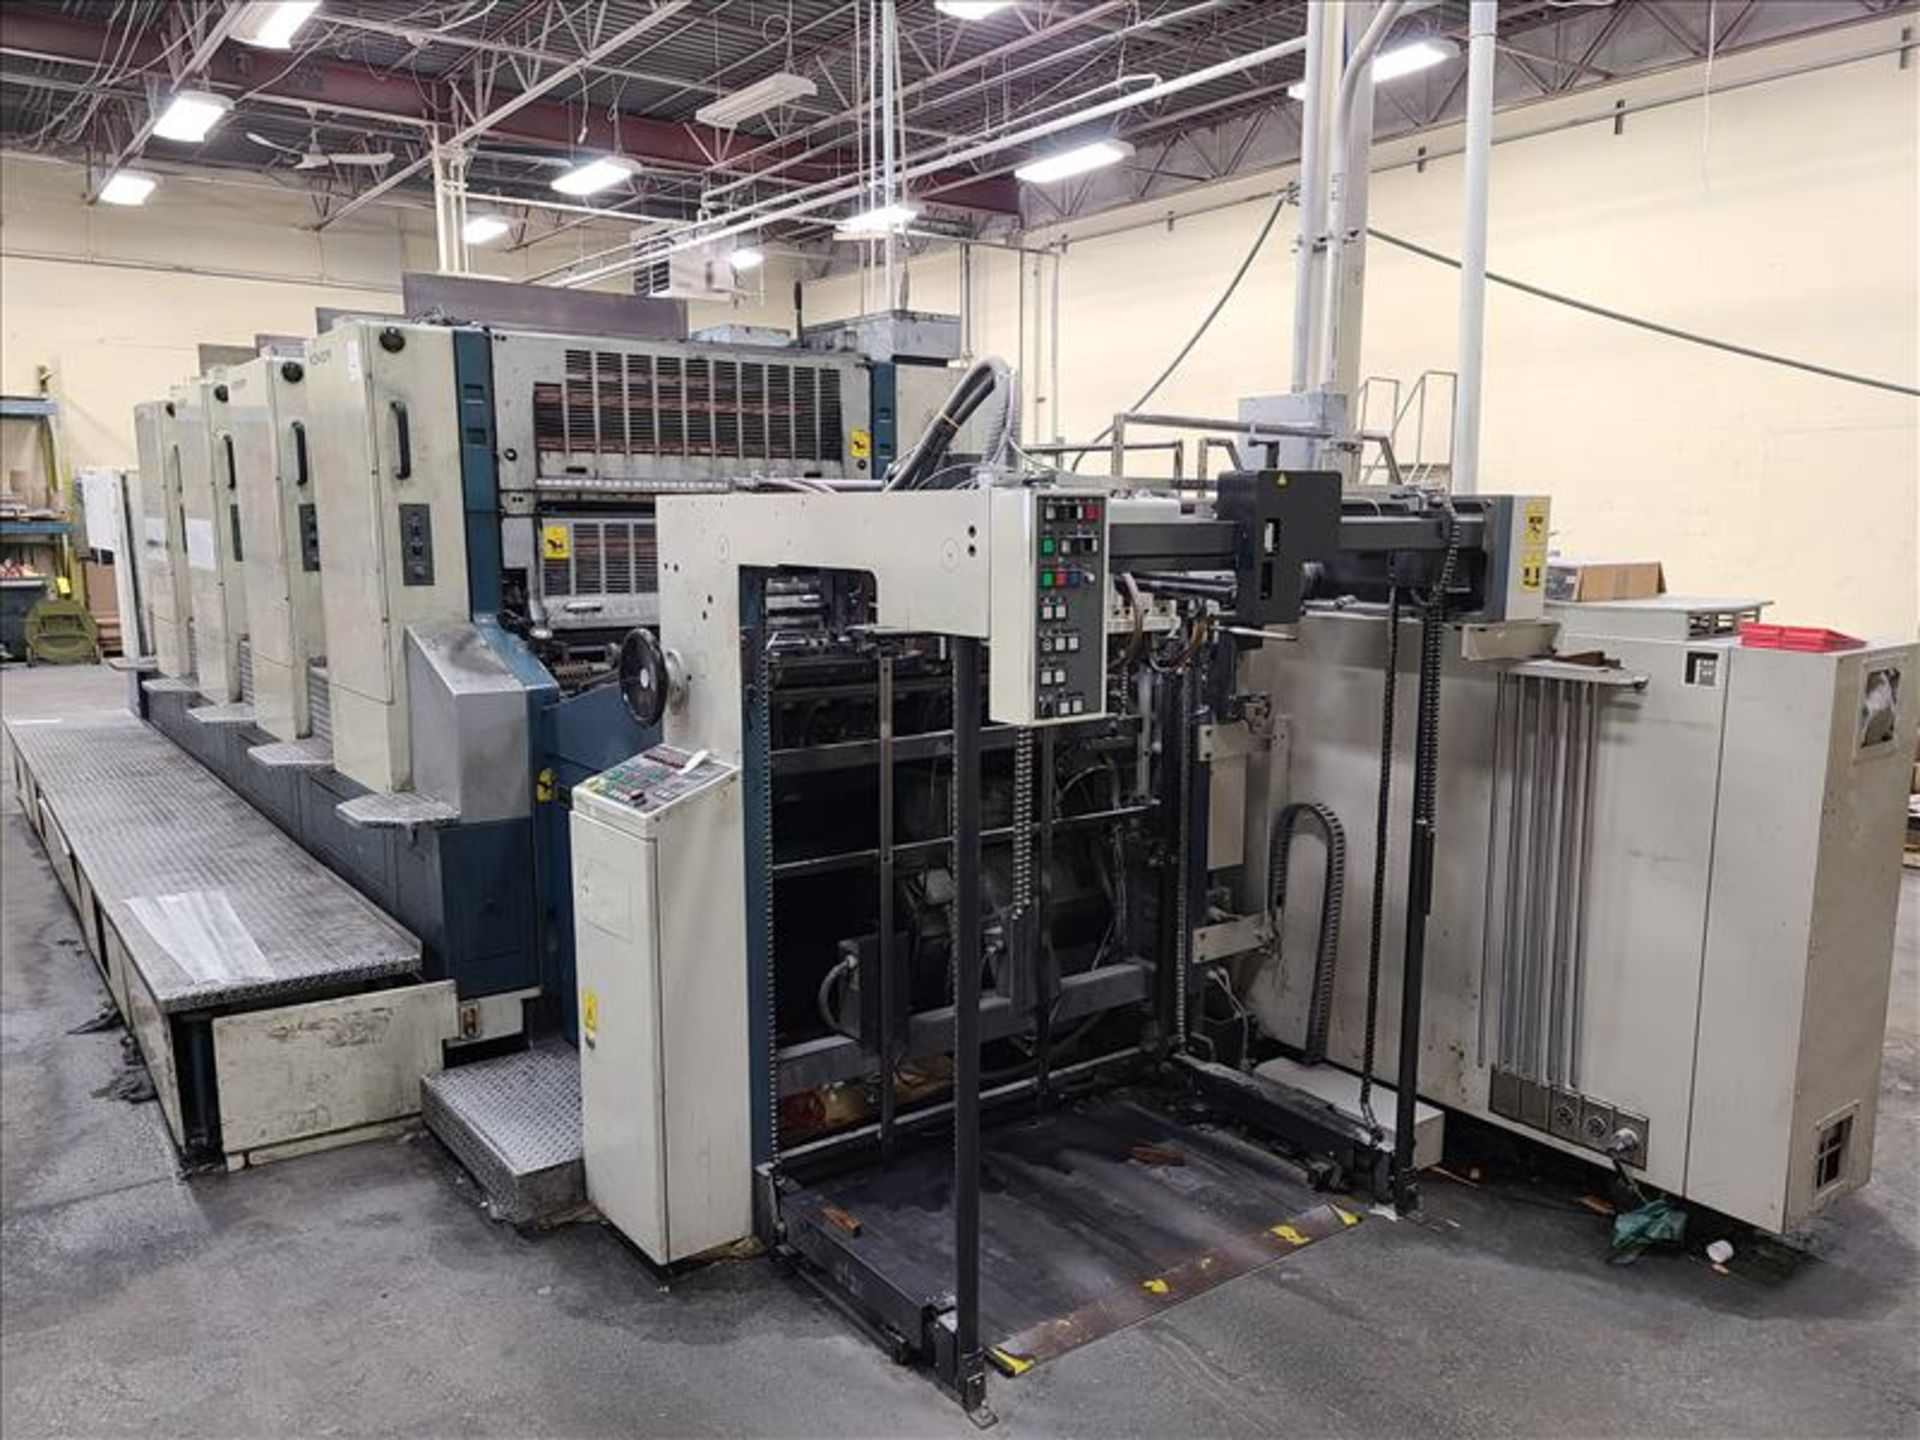 Komori 4-color offset printing press, Series Lithrone 40, model L-440, S/N.2202 approx. 68 - Image 8 of 22